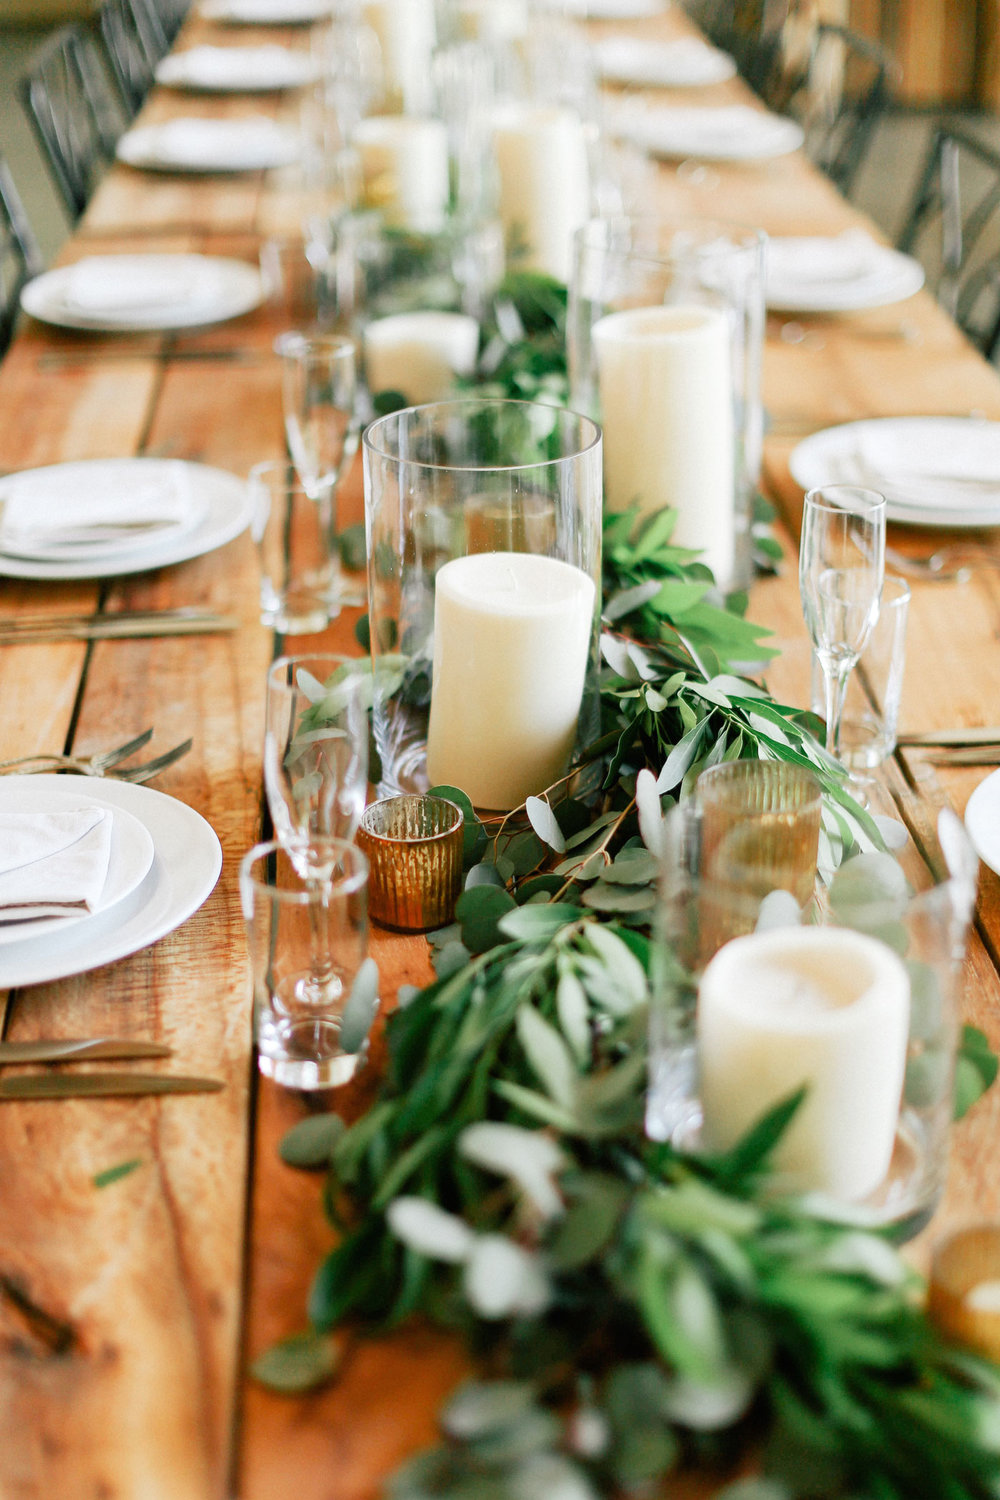 RusticGreeneryWedding.jpg